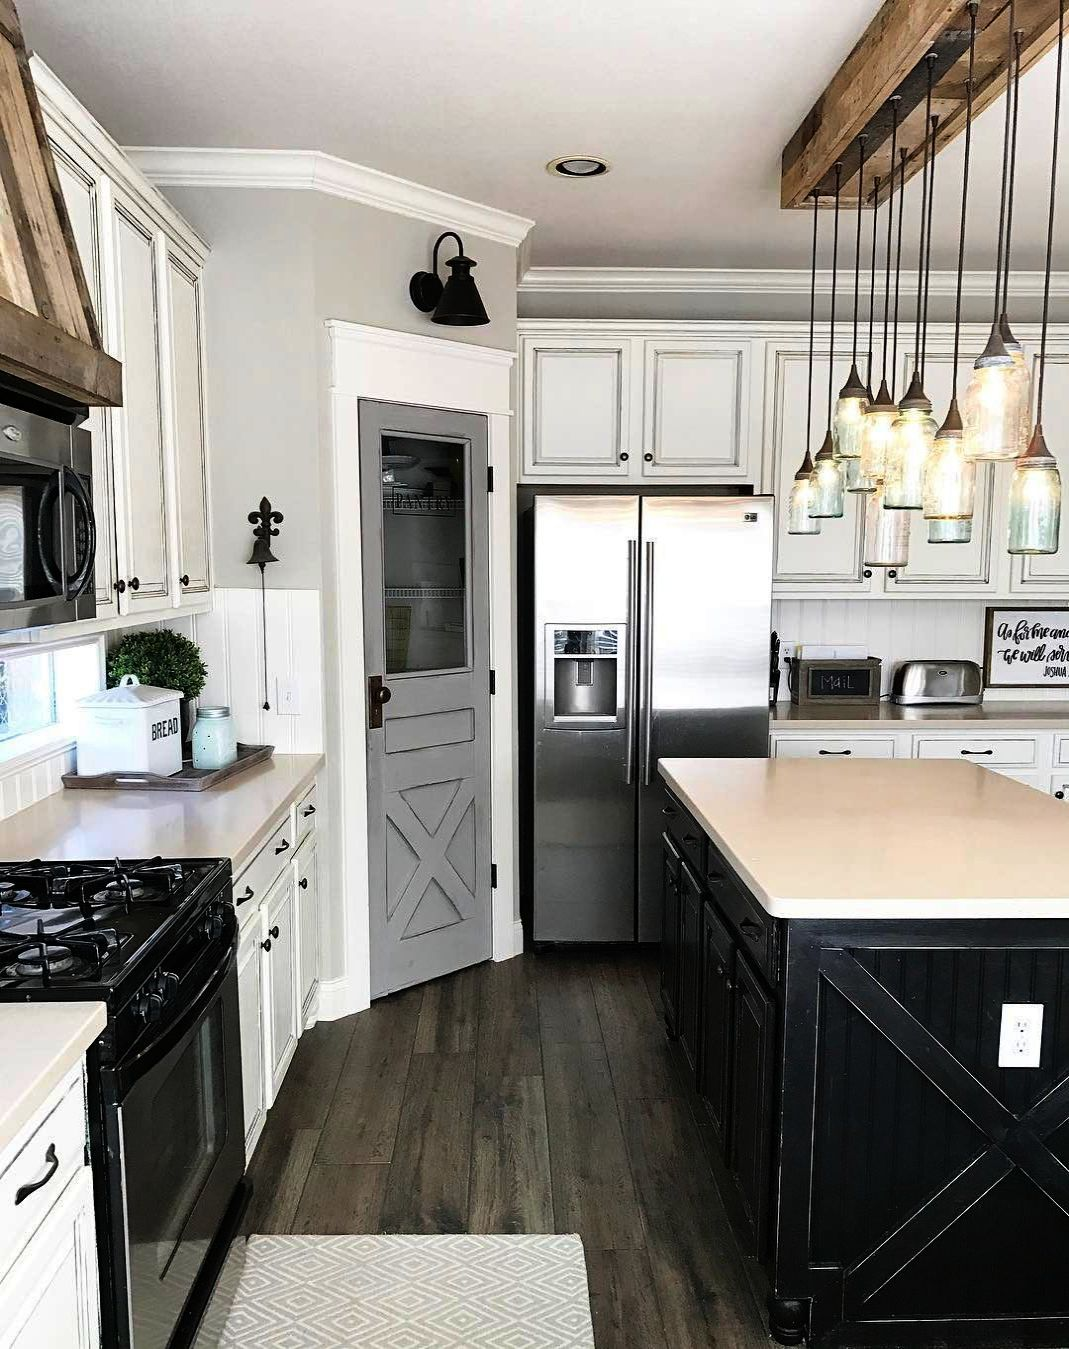 Bedroom Furniture Sets Jcpenney An Furniture Outlet High Point Nc Modern Farmhouse Kitchens Farmhouse Kitchen Decor Farmhouse Style Kitchen